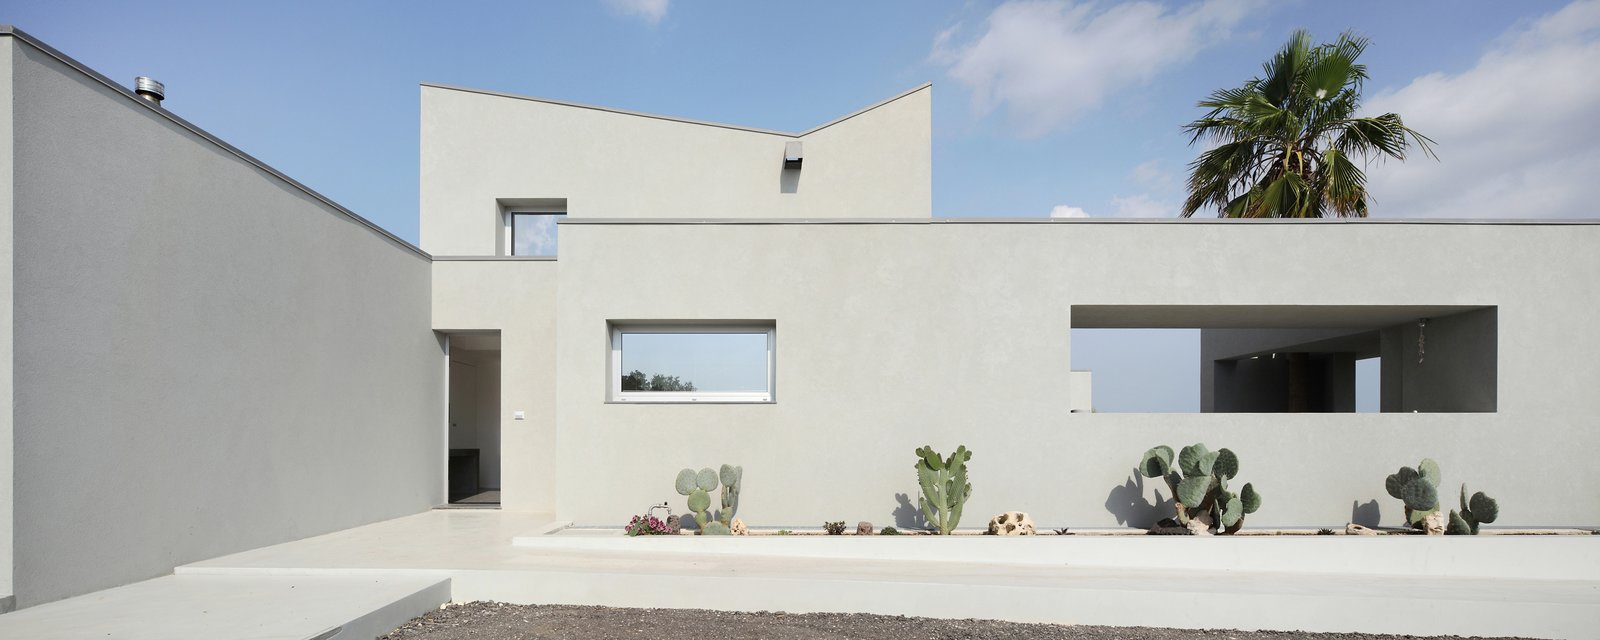 """The architect calls the house a """"contemporary interpretation of the traditional Hyblaean villa."""" Both the promenade and groves of native olive trees are typical features of that style.  A Home That Dramatically Replicates a Starry Sky in Its Living Room by Caroline Wallis"""